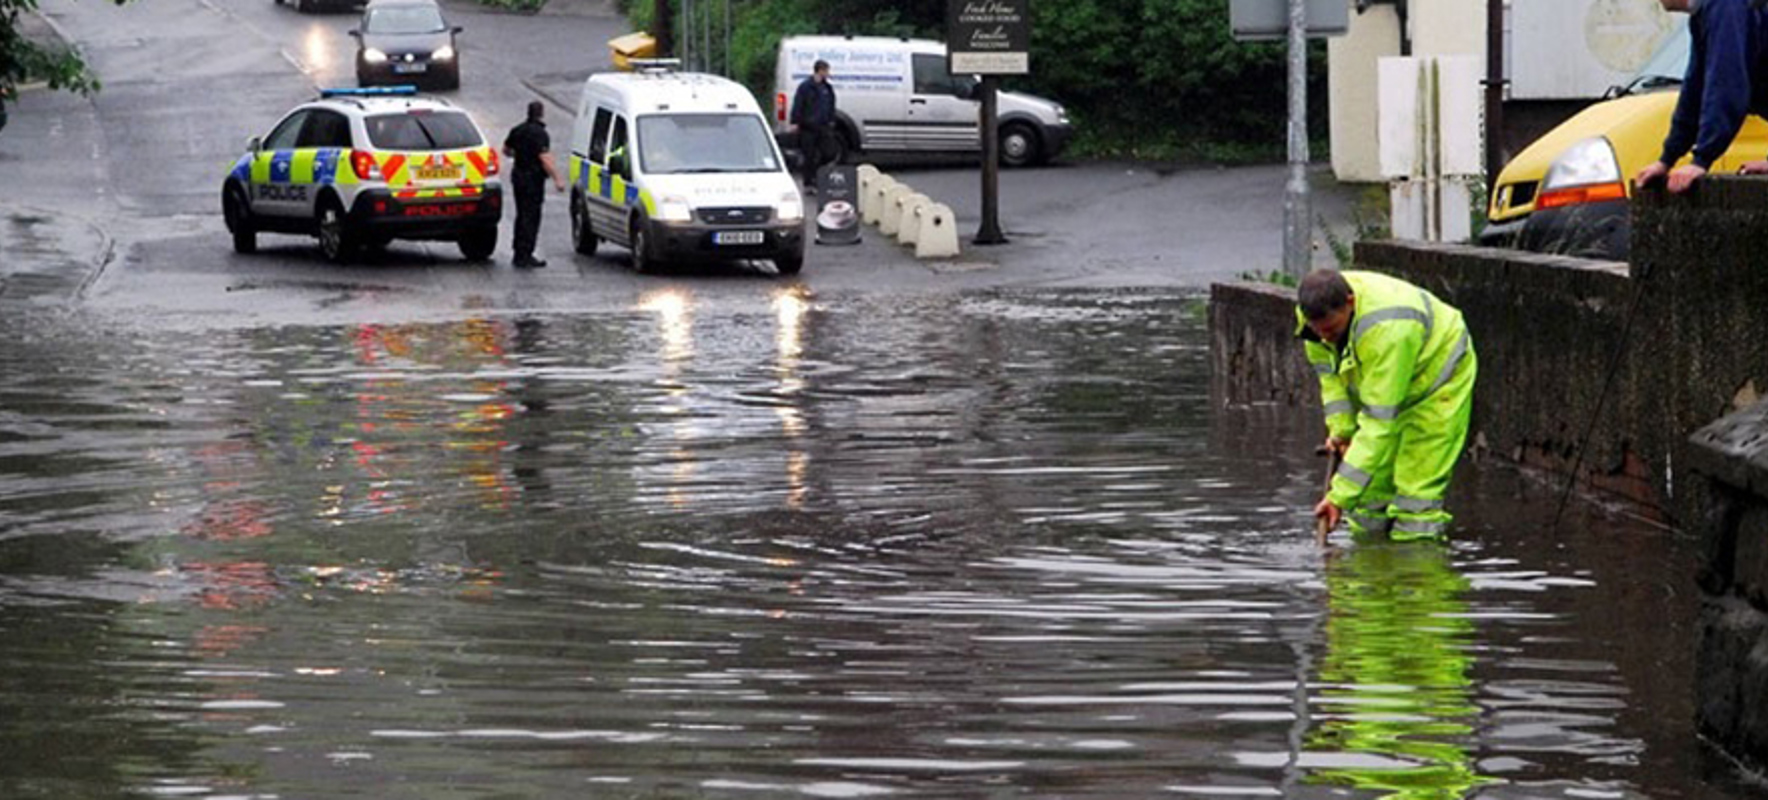 Did you know you are more likely to get flooded than burgled?